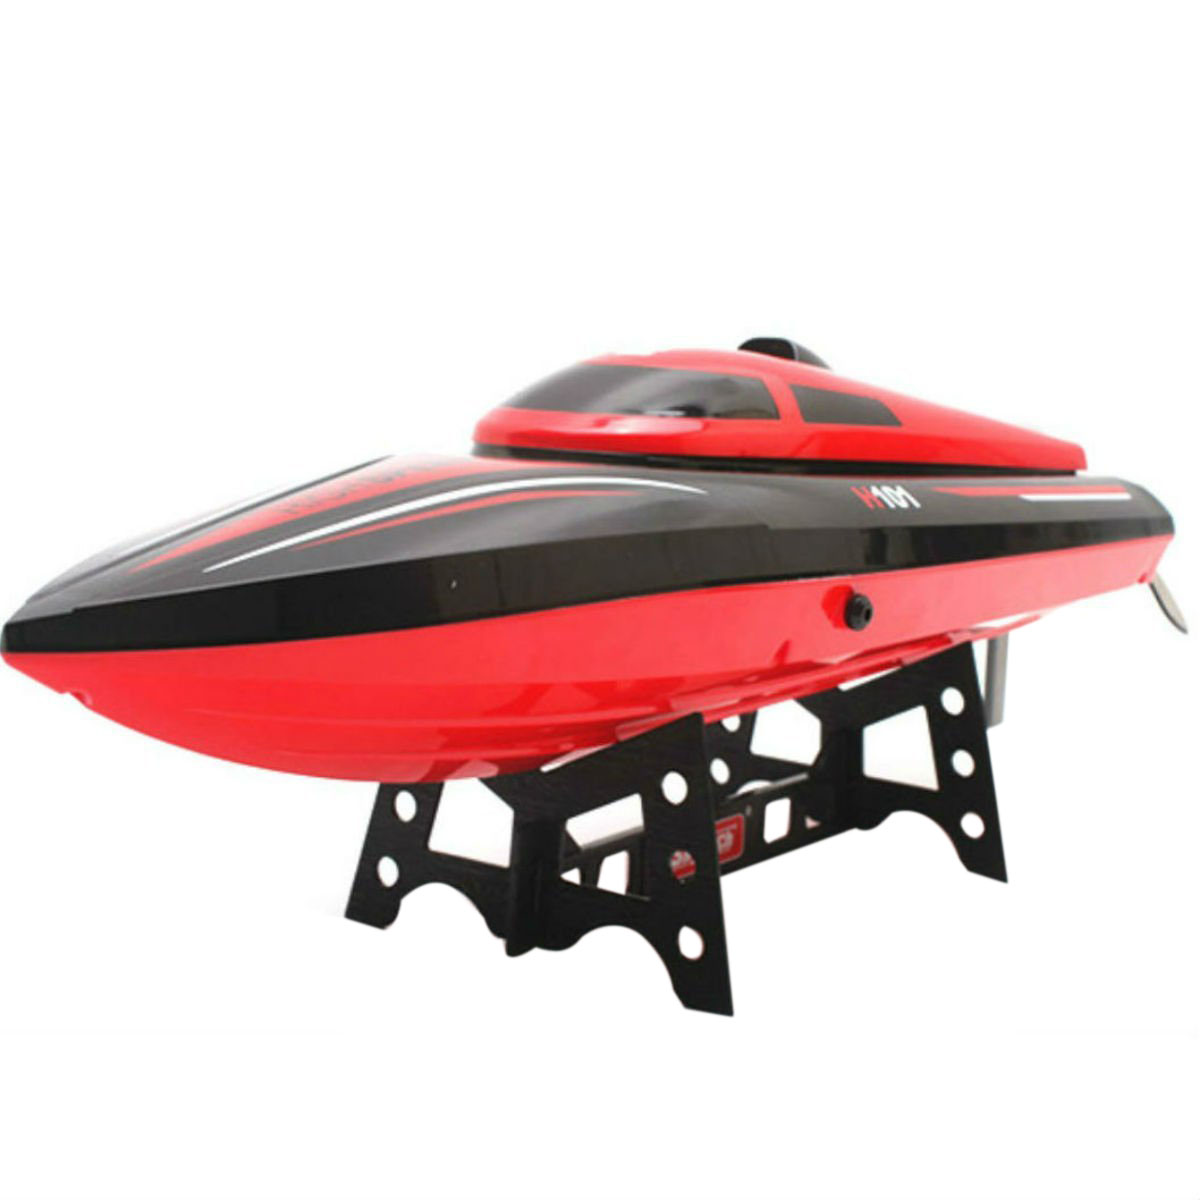 Newest Speedboat Outdoor H101 RC Boat 2.4G 30km/h High Speed Racing Remote Control Ship RC Steerable Boat For Boy Toys